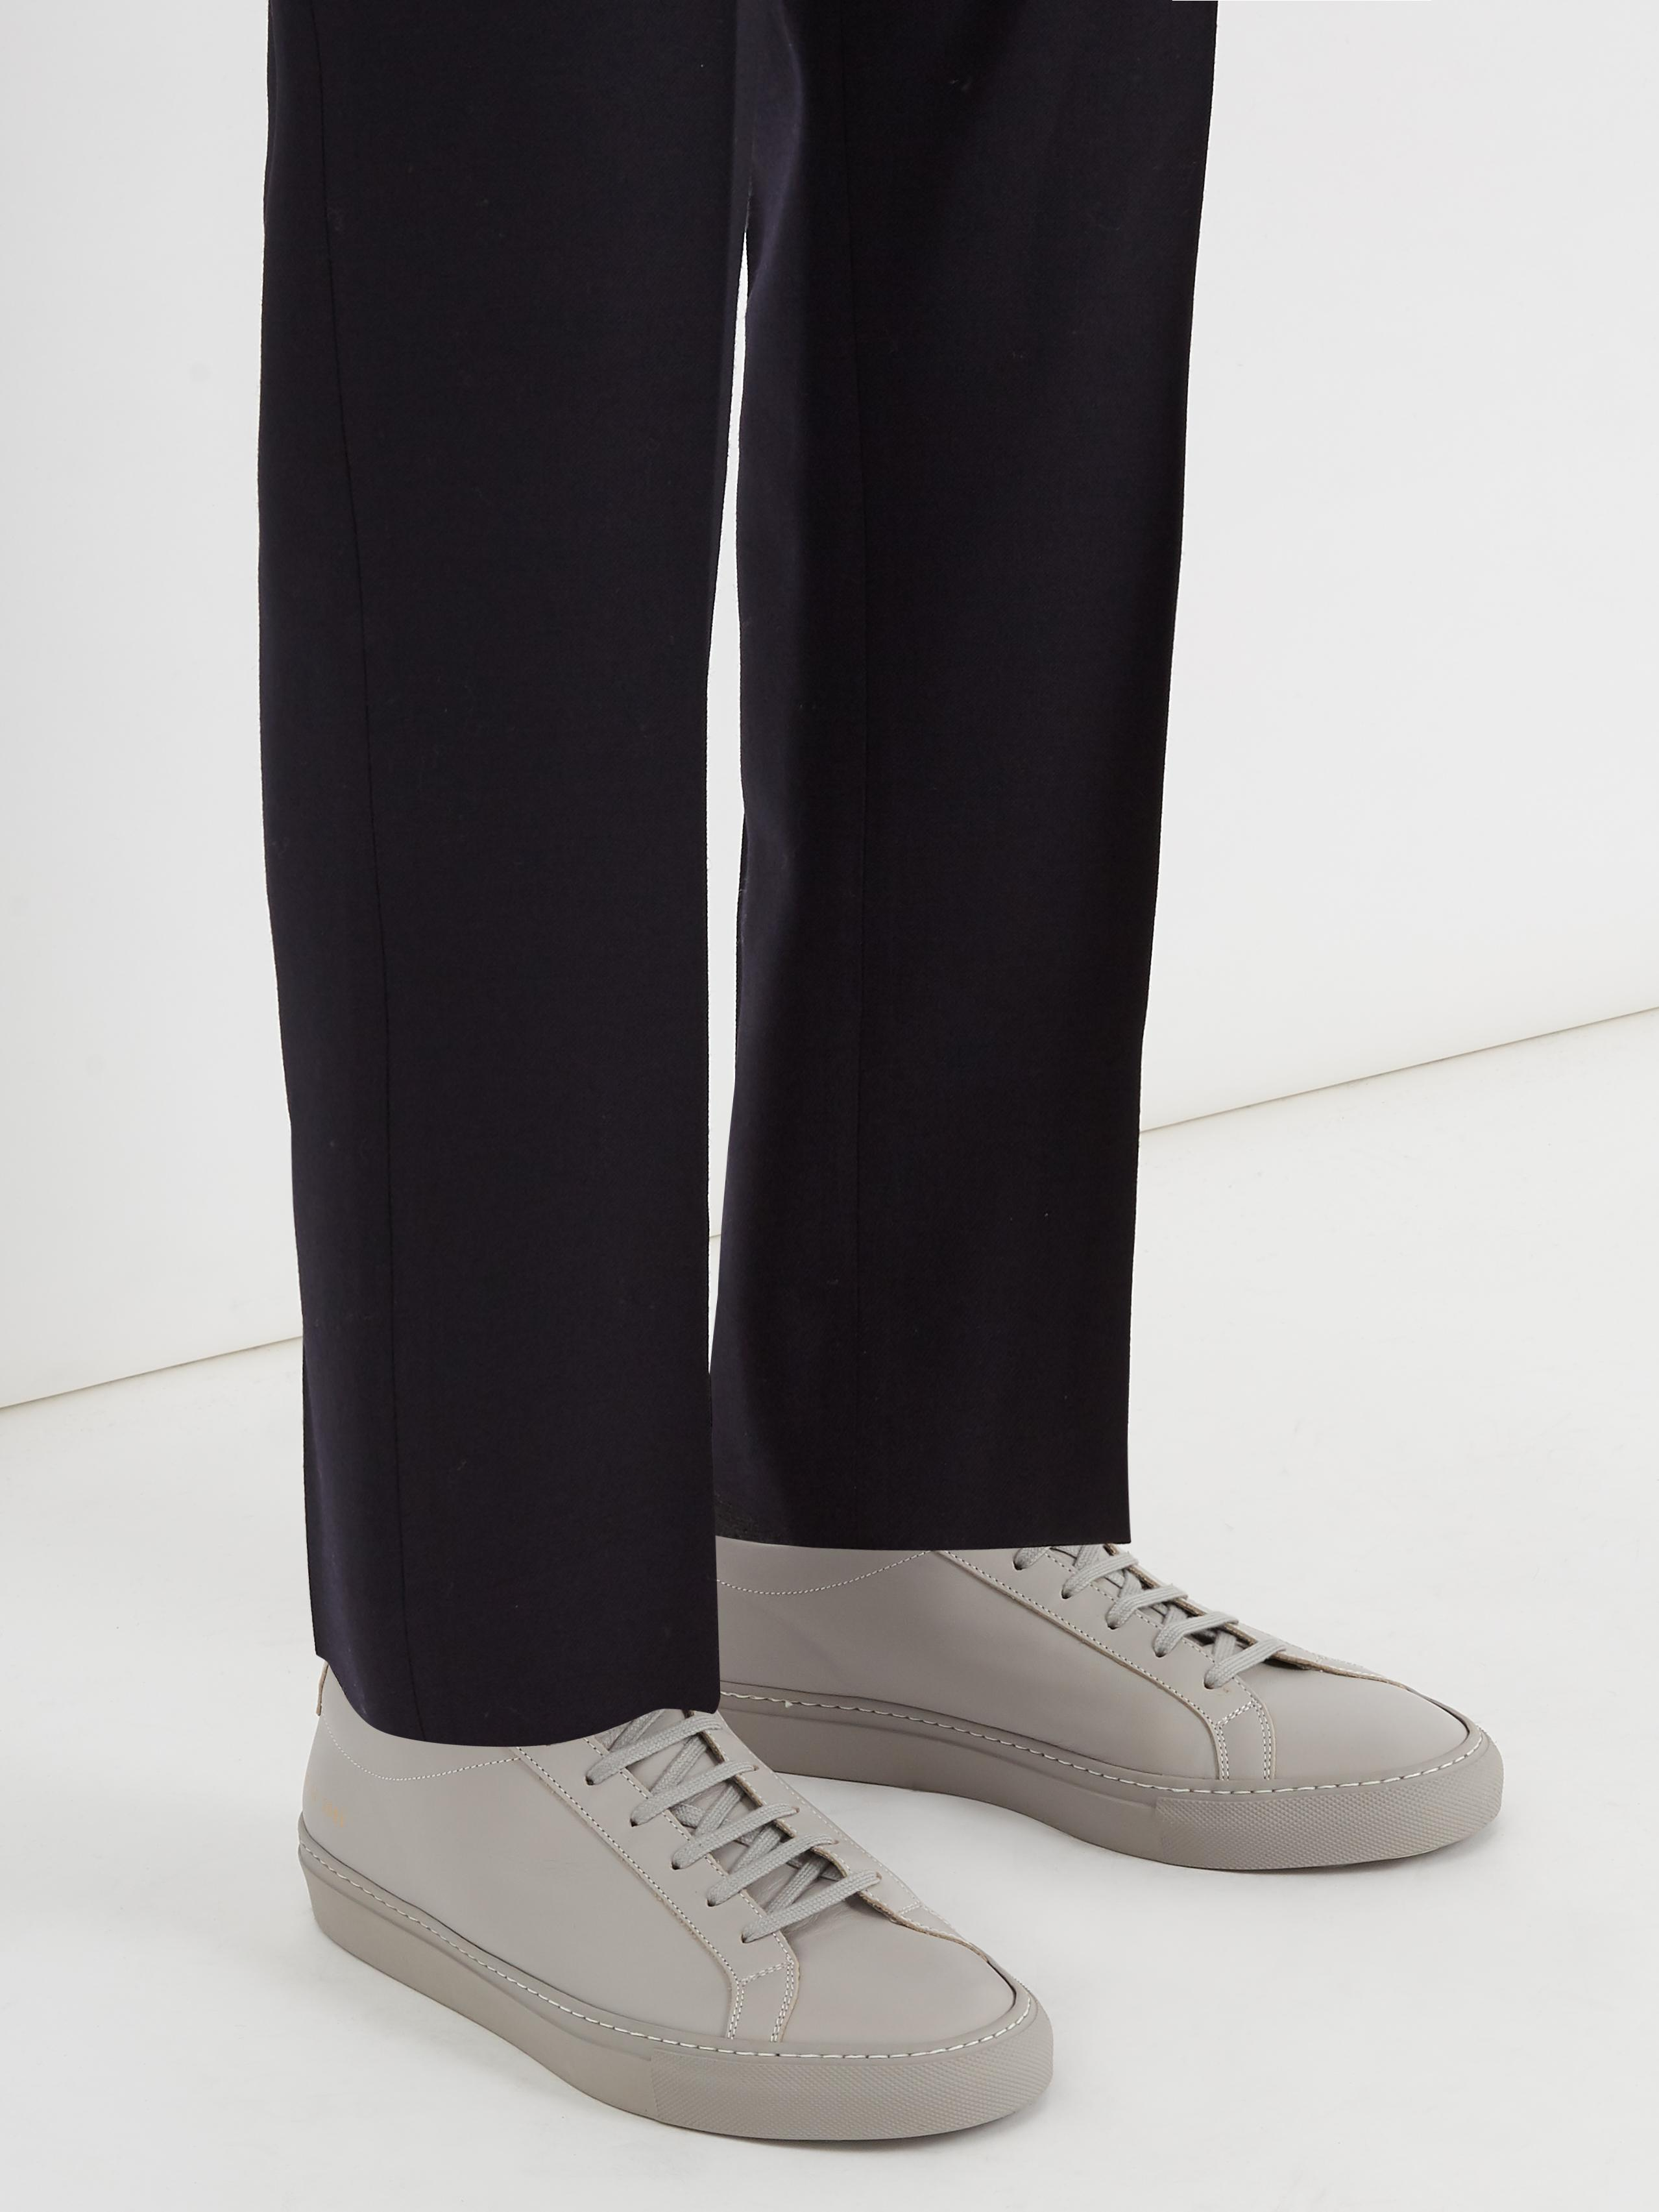 Common Projects Original Achilles Low-top Leather Trainers in Grey (Grey) for Men